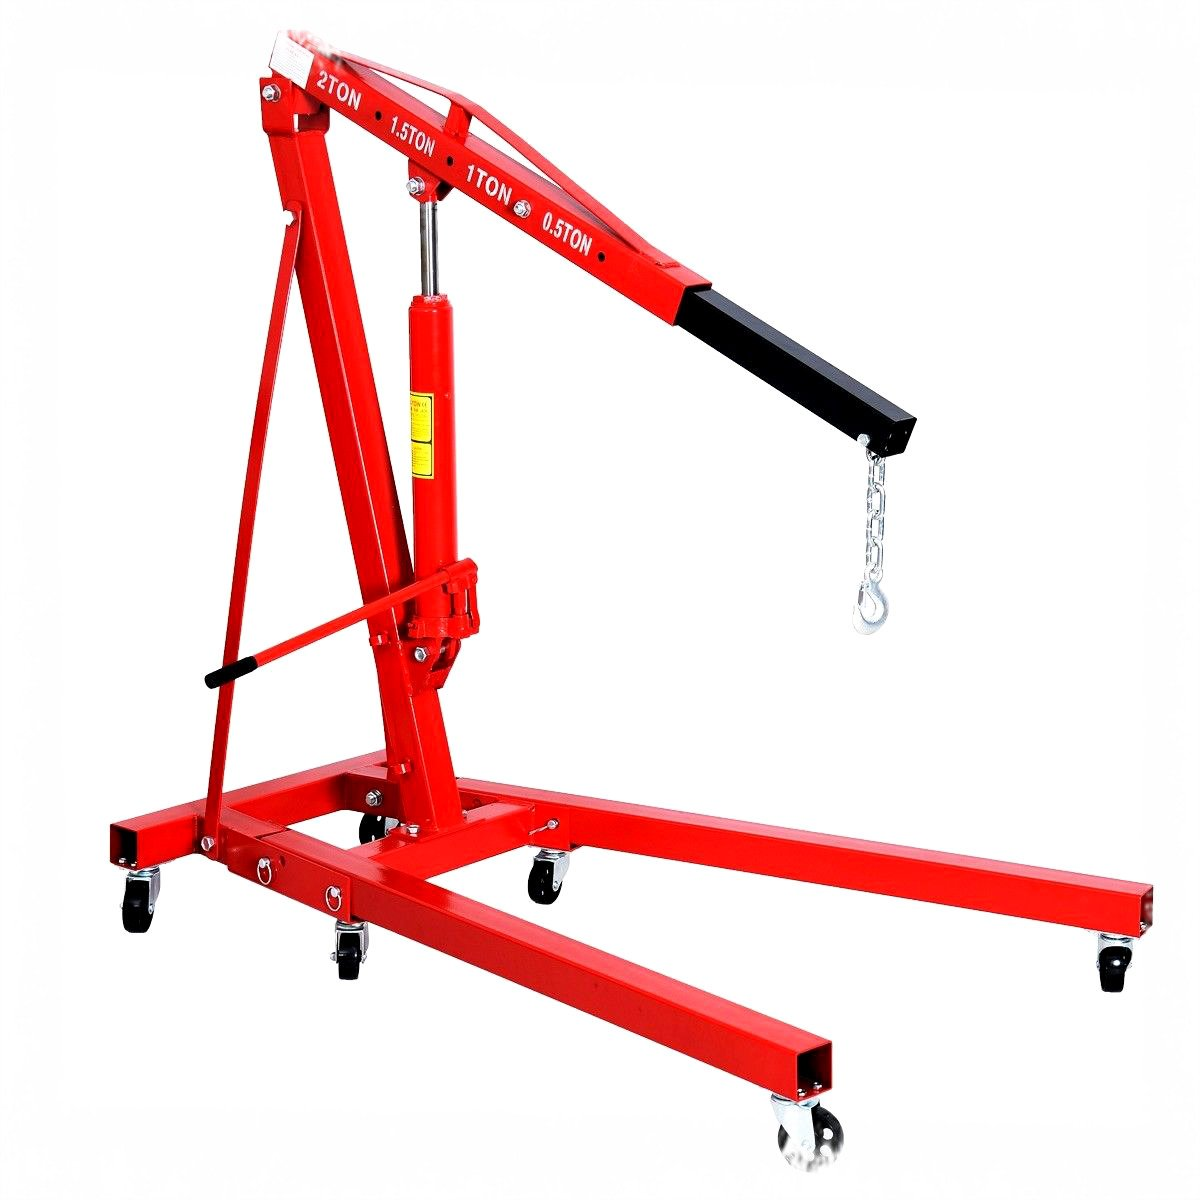 Engine Motor Hoist Cherry Garage Lifting Picker Crane Lift 2 Ton 4000 lb Capacity Red Color - House Deals